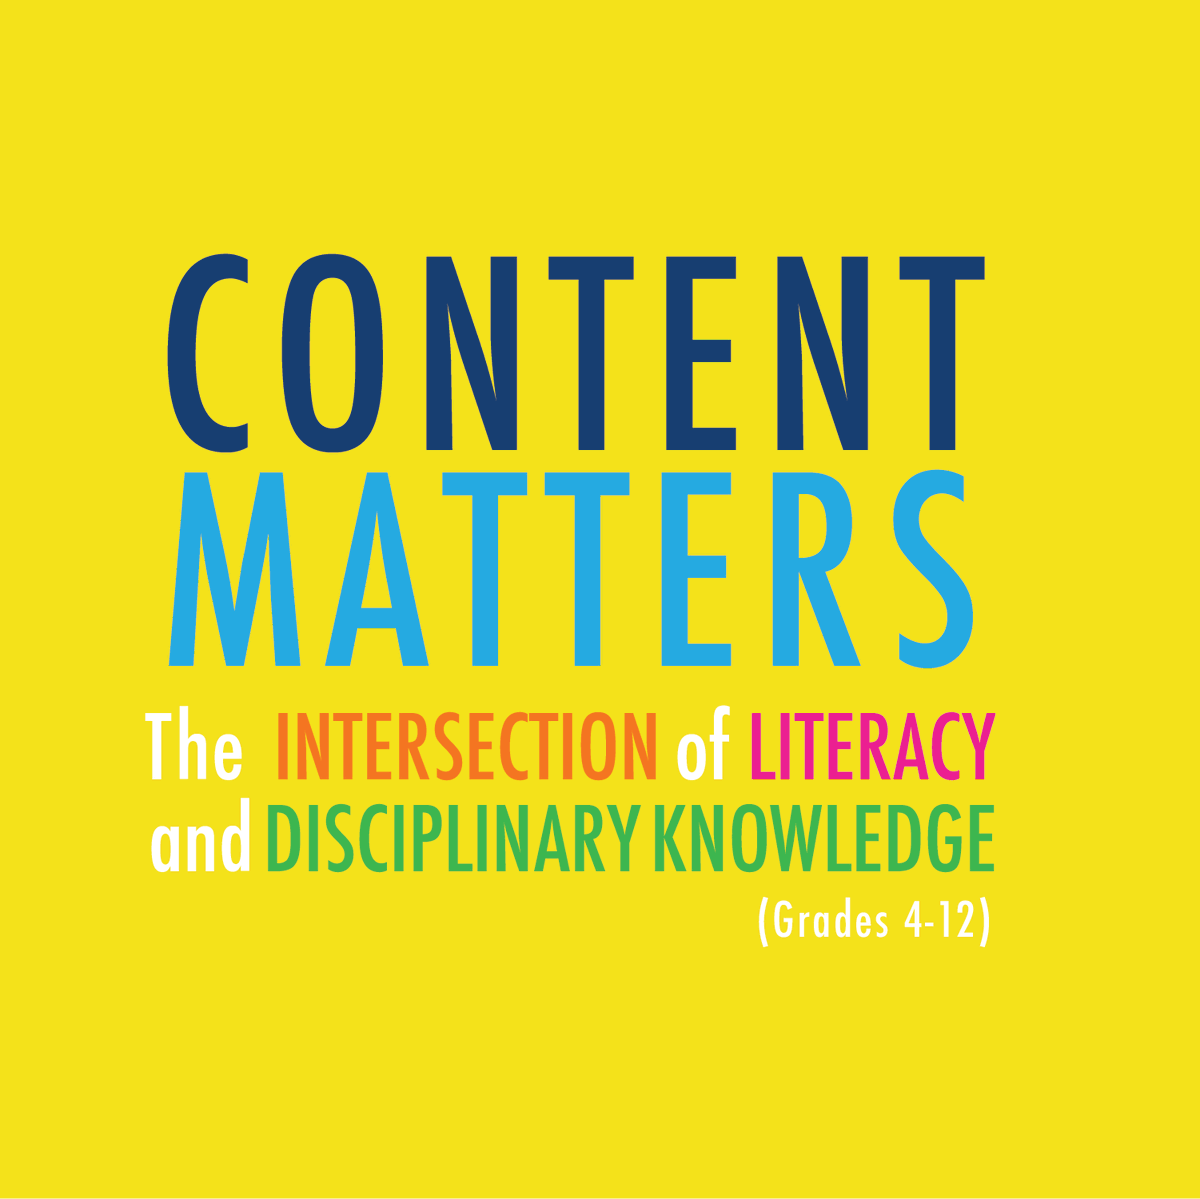 """Register today for #FREE #virtuallearning #conference """"CONTENT MATTERS: The Intersection of Literacy and Disciplinary Knowledge (grades 4-12)""""! Head to https://t.co/fNemtMxXJG for info on sessions, presenters and #PD certificates! #k12 #profdev #principals #superintendents https://t.co/yQudB2yrv8"""